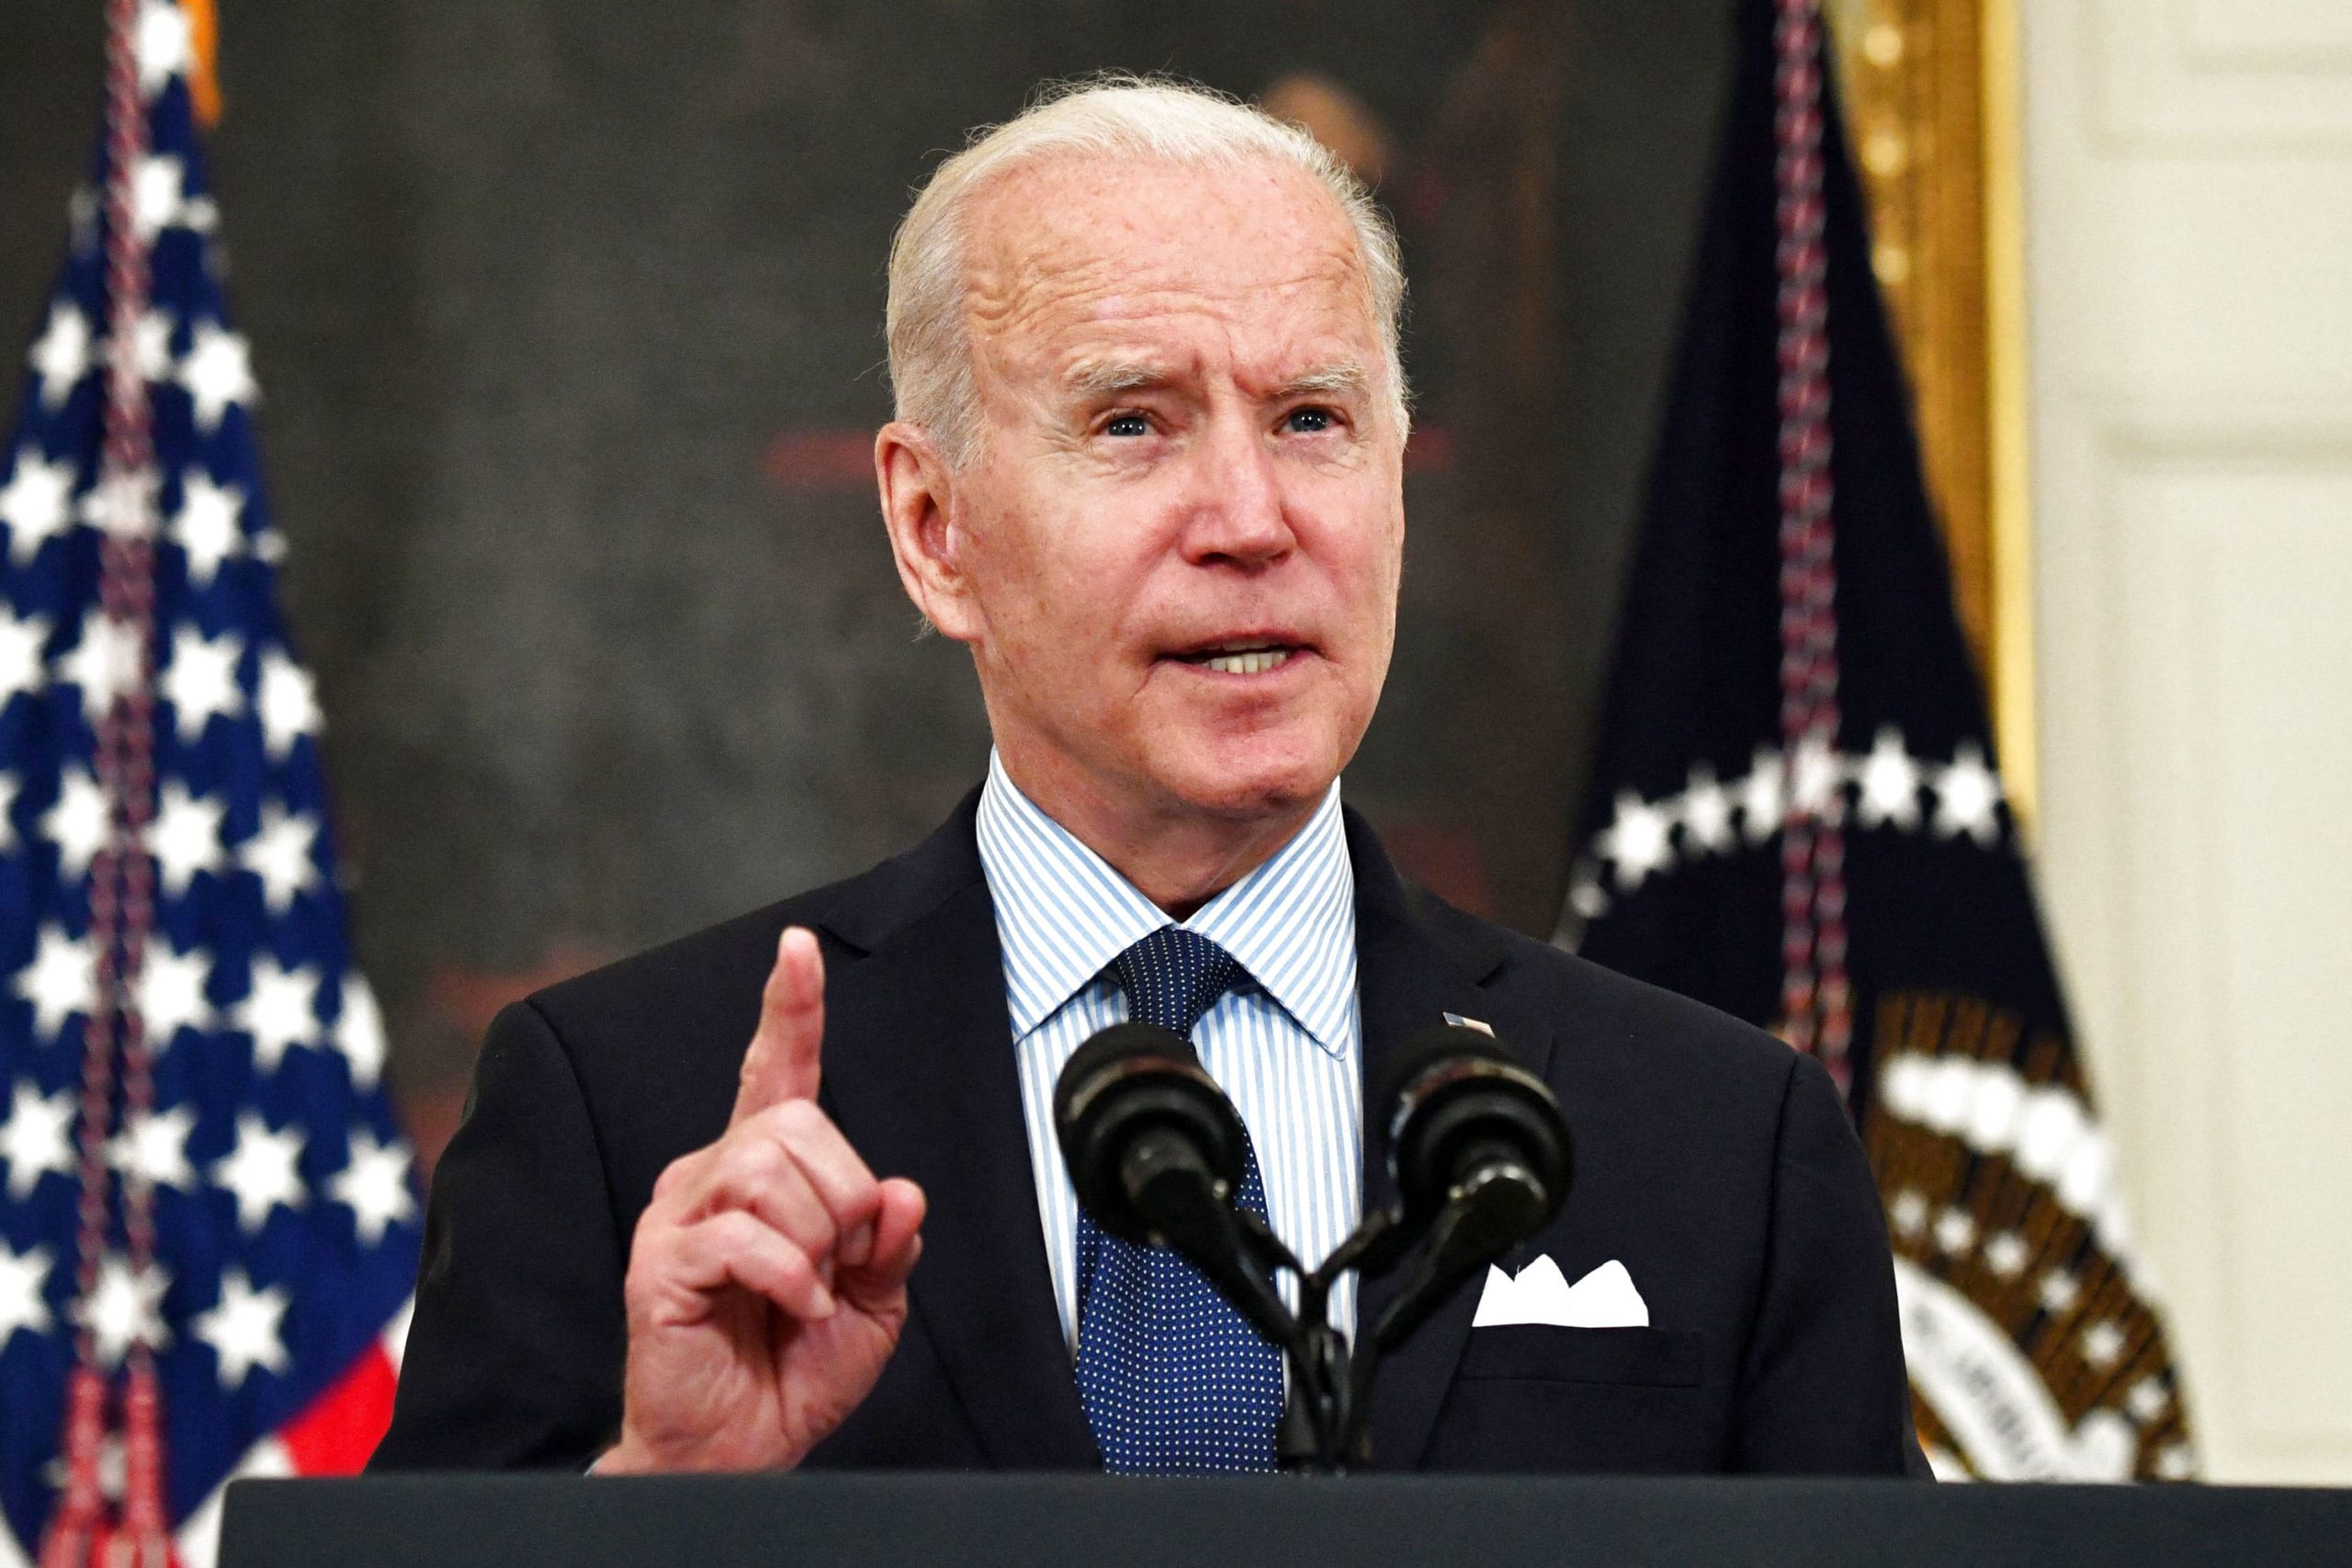 Biden's new Covid vaccination goal is for 70% of adults to have at least one shot by July 4